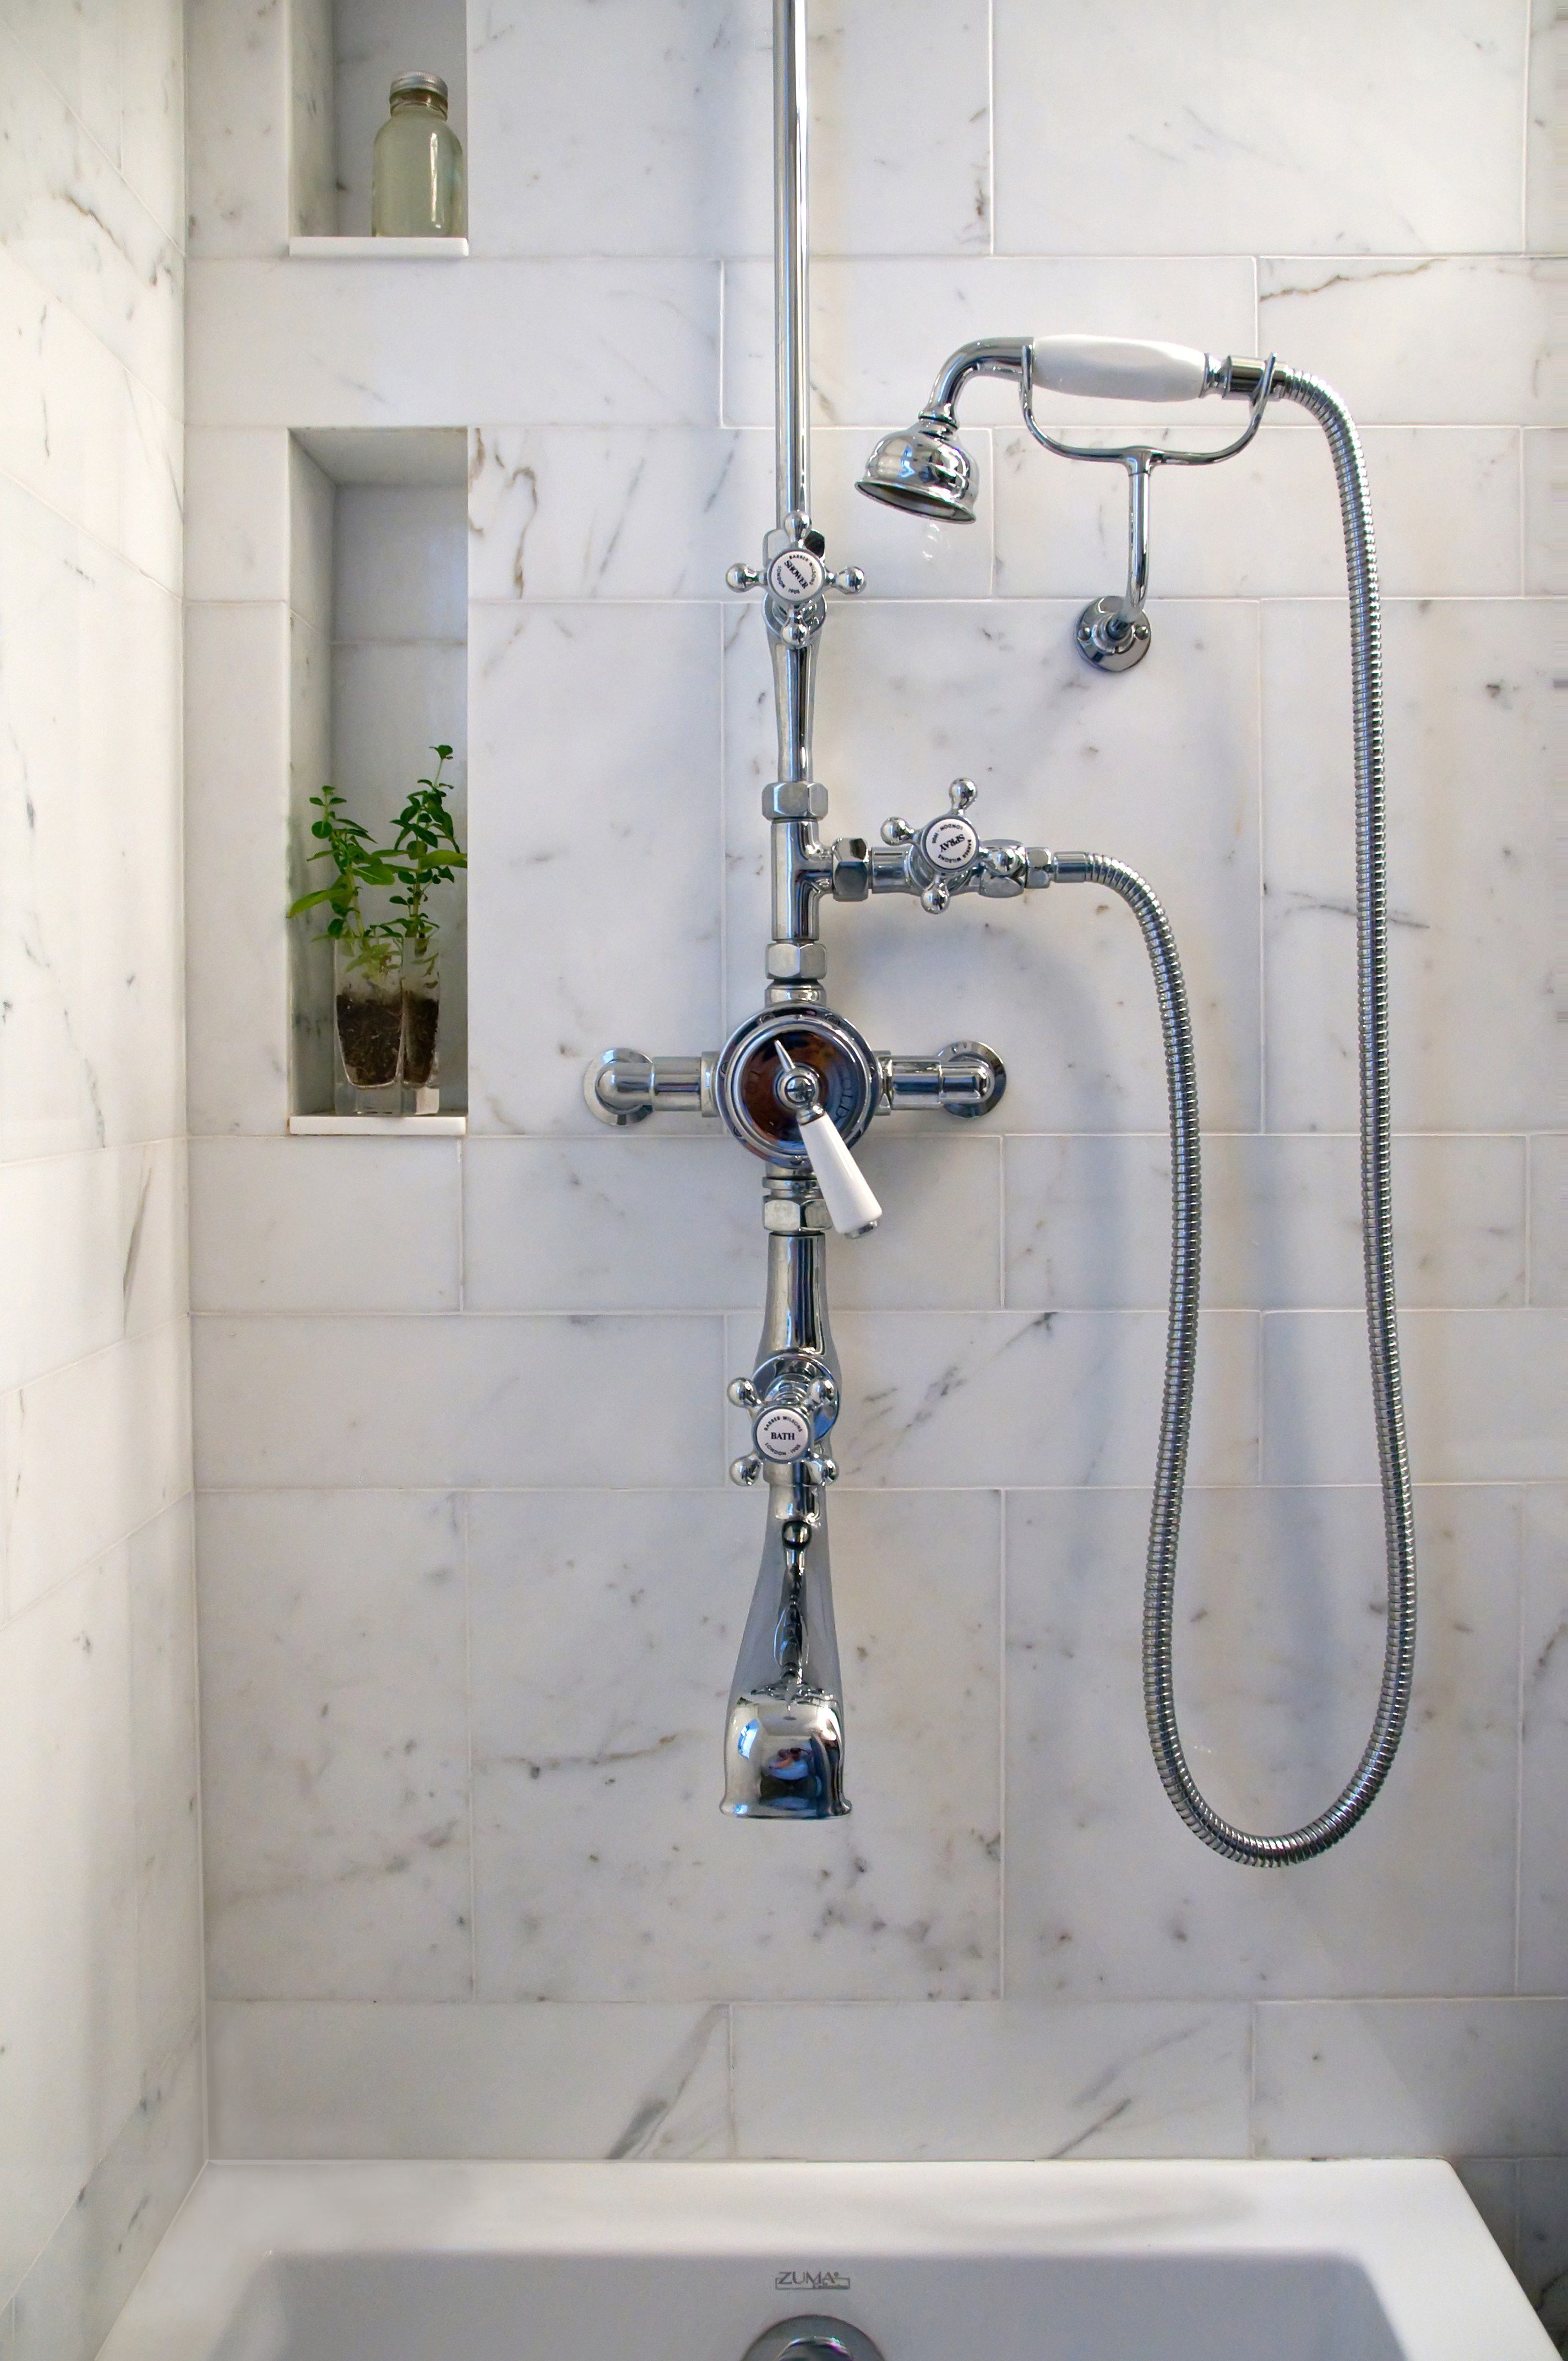 sprayer in the shower. Pipes on the exterior like in the beginnings ...